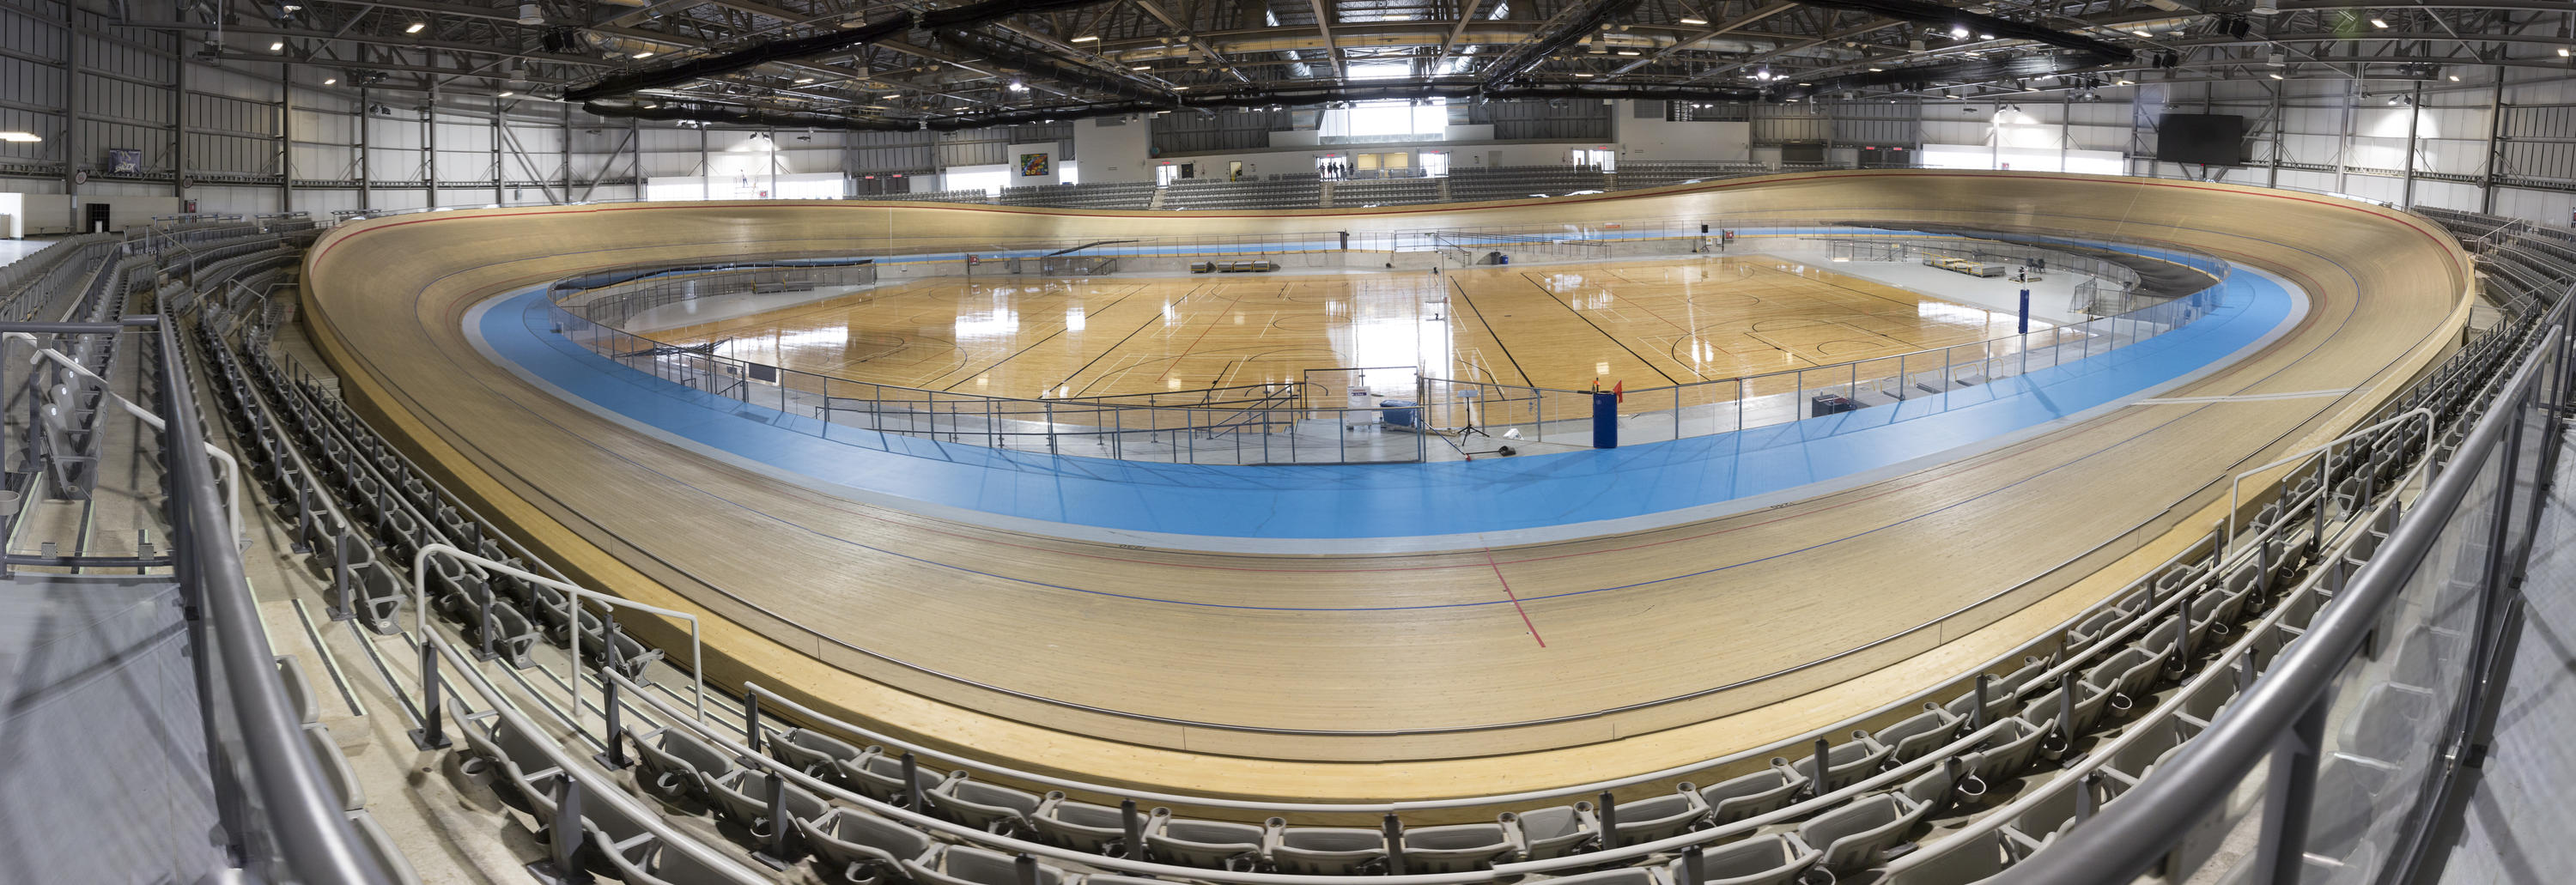 Wide angle view of Milton velodrome